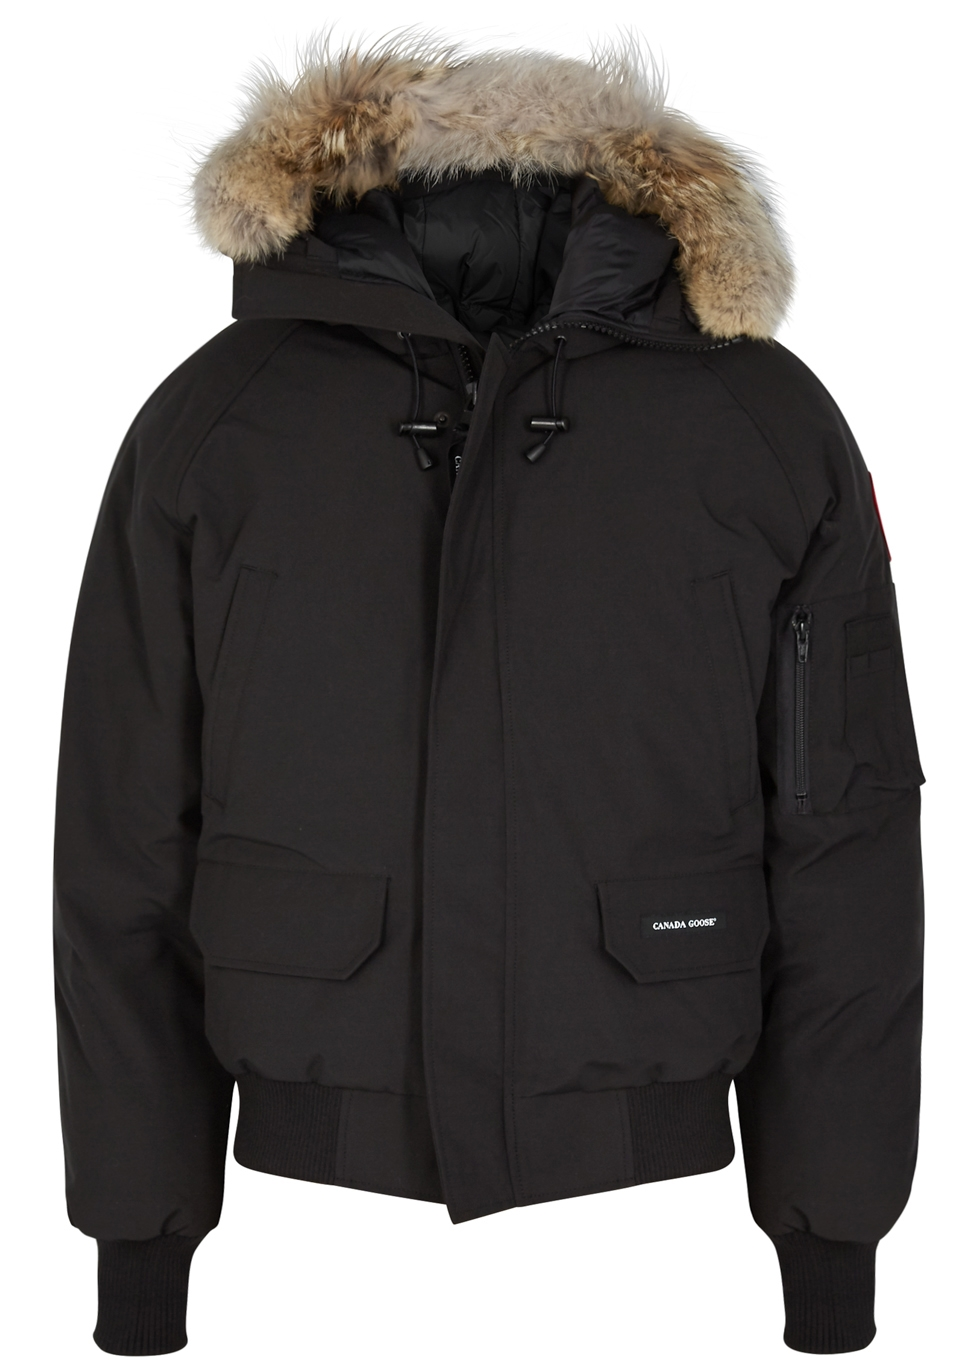 Chilliwack Fusion Fit fur-trimmed jacket - Canada Goose